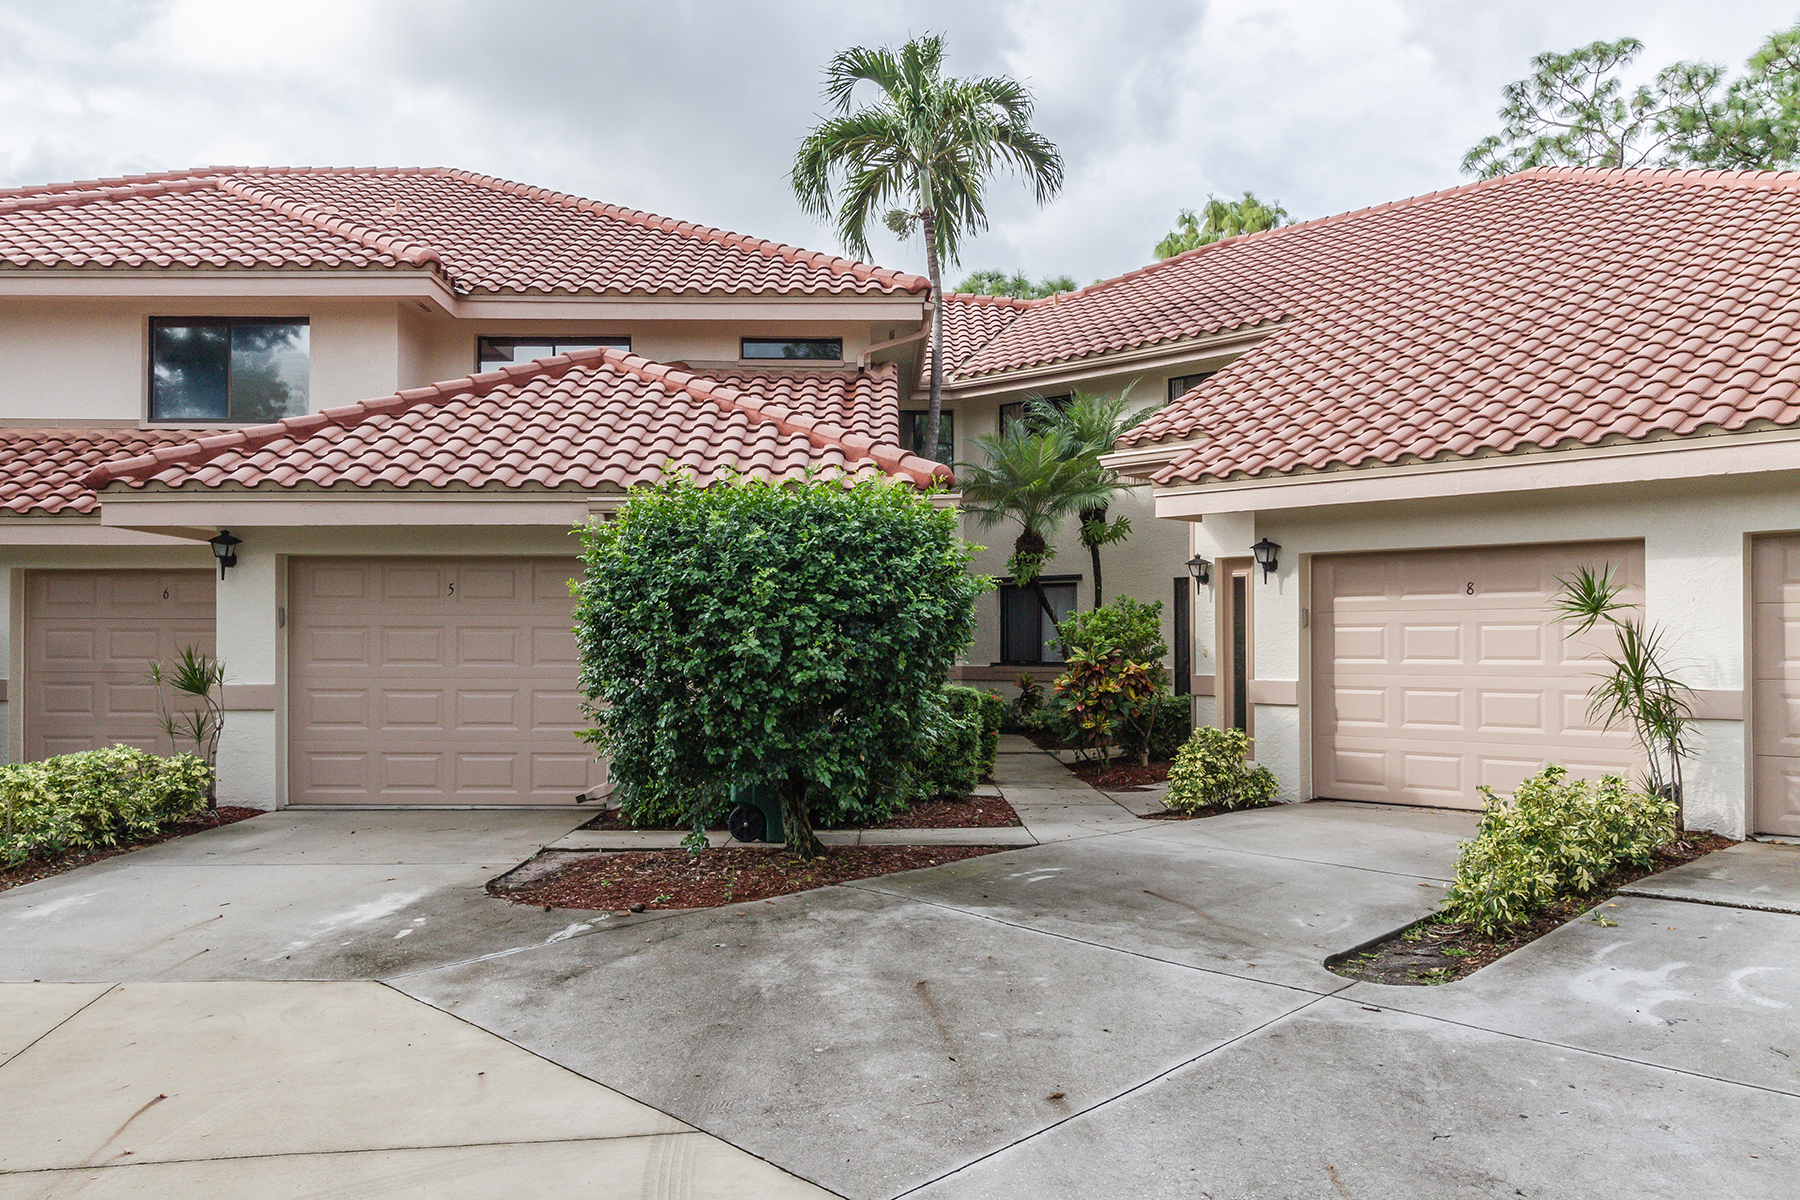 Condominium for Rent at BERKSHIRE LAKES - COACH HOMES 46 Bennington Dr 6-8, Naples, Florida 34104 United States